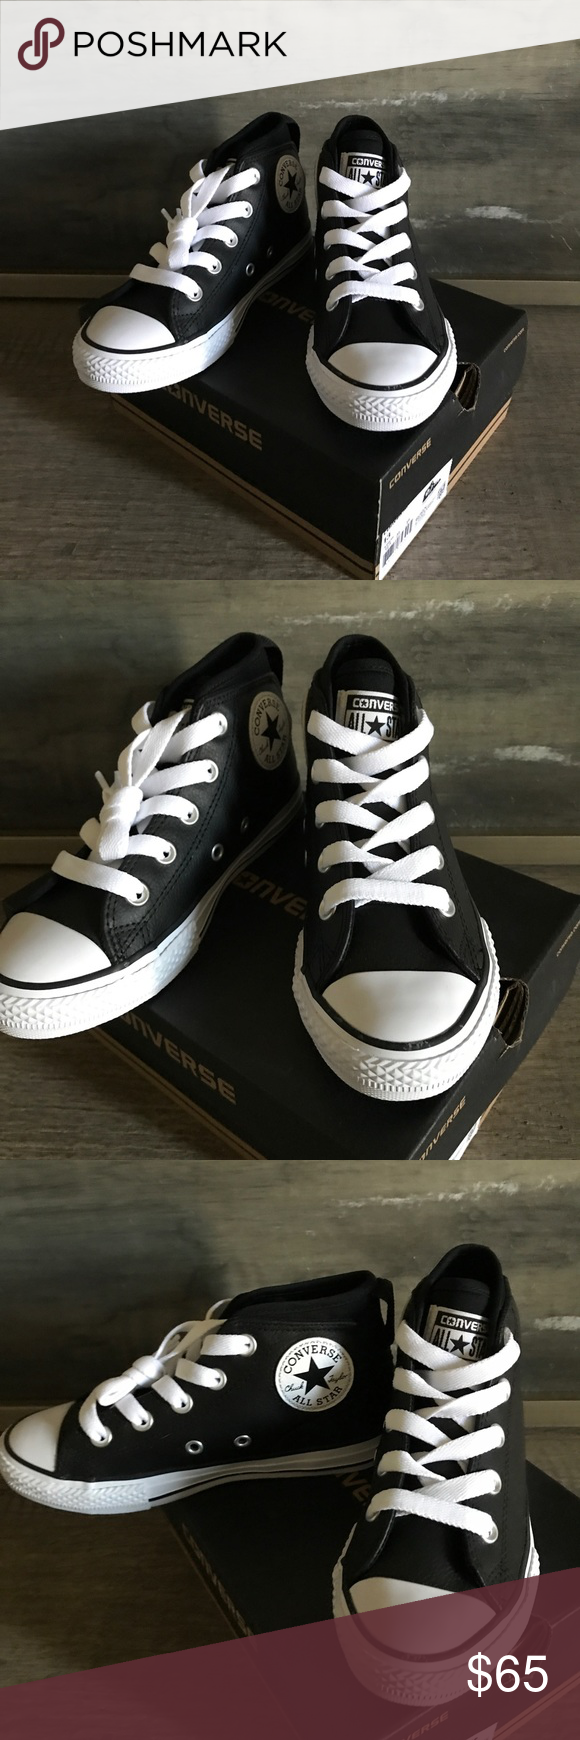 4613f6866750a0 Boys leather converse Little kid size 13 Brand new with box Black and white  hi tops